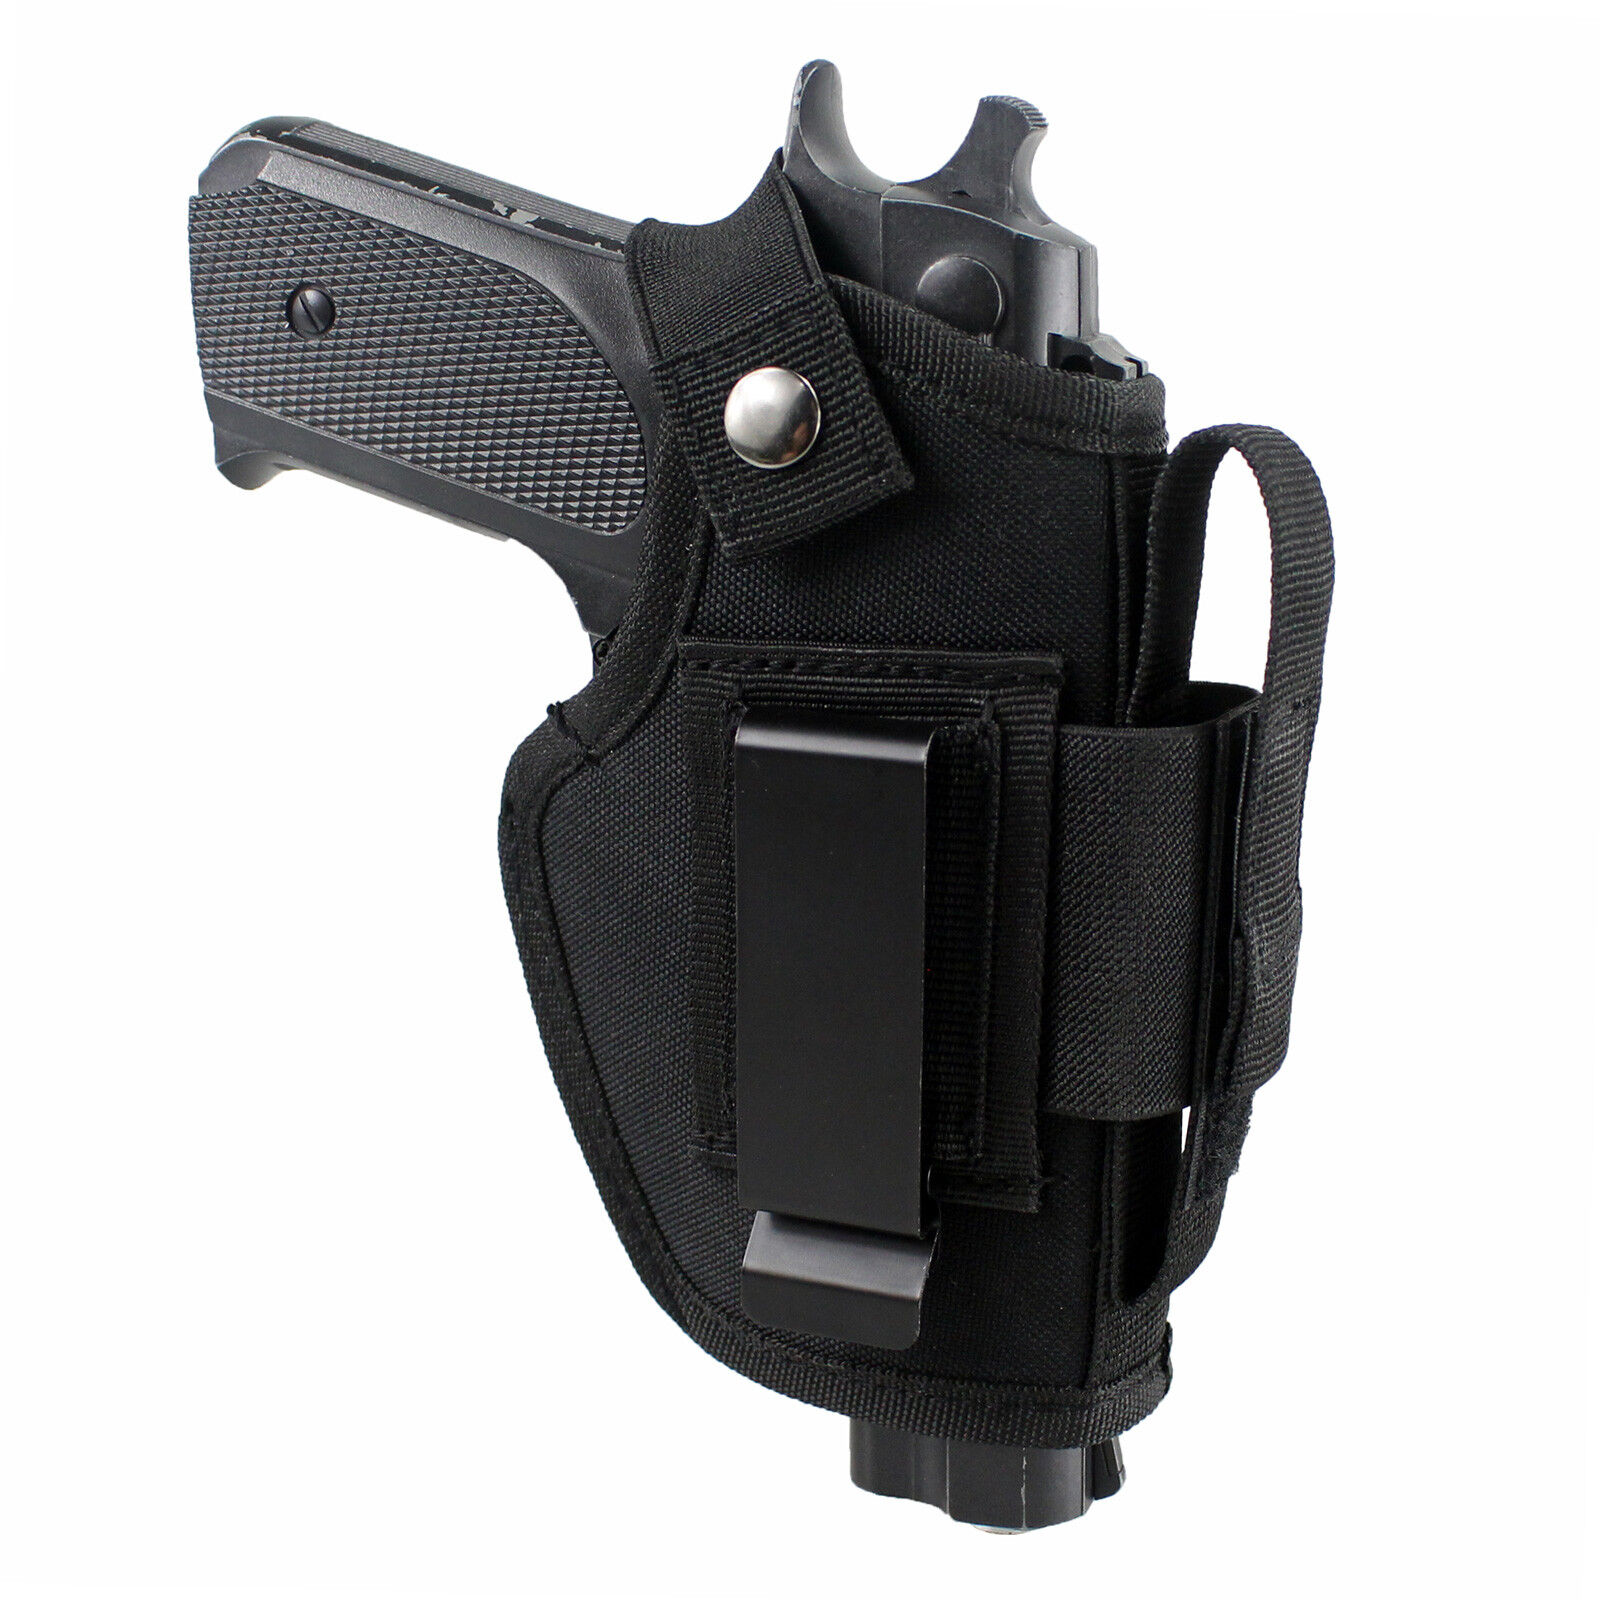 Concealed Carry Inside Waistband Gun Holsters f All Pistols Ambidextrous OWB IWB